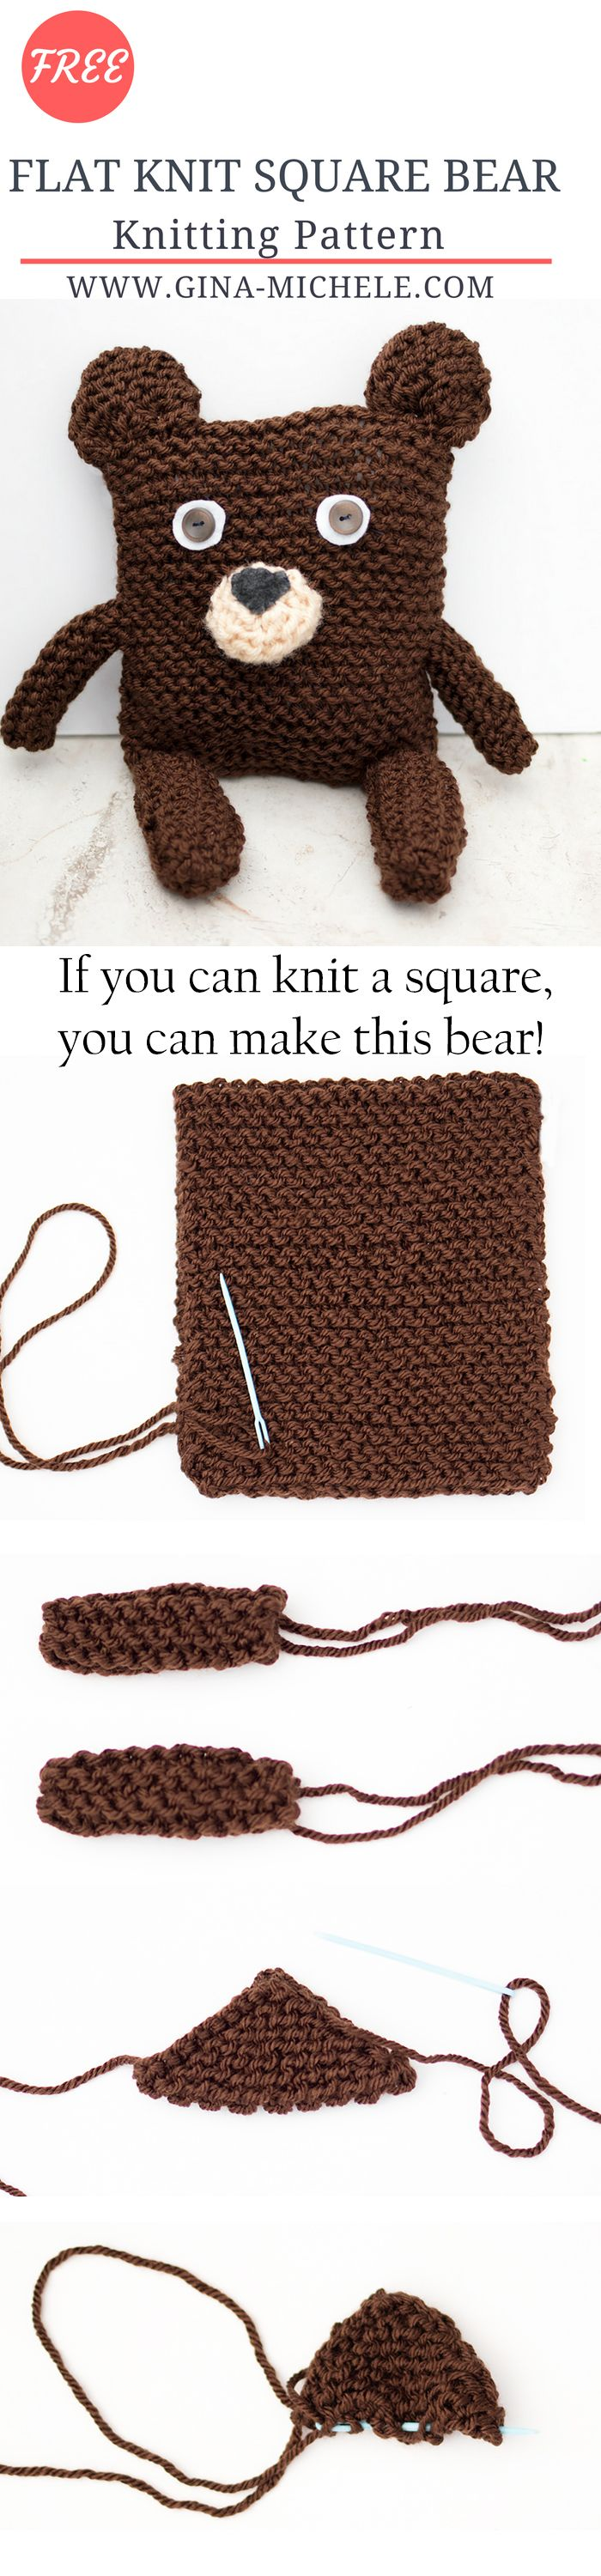 FREE Square Bear Knitting Pattern- if you can knit a square, you can make this bear!